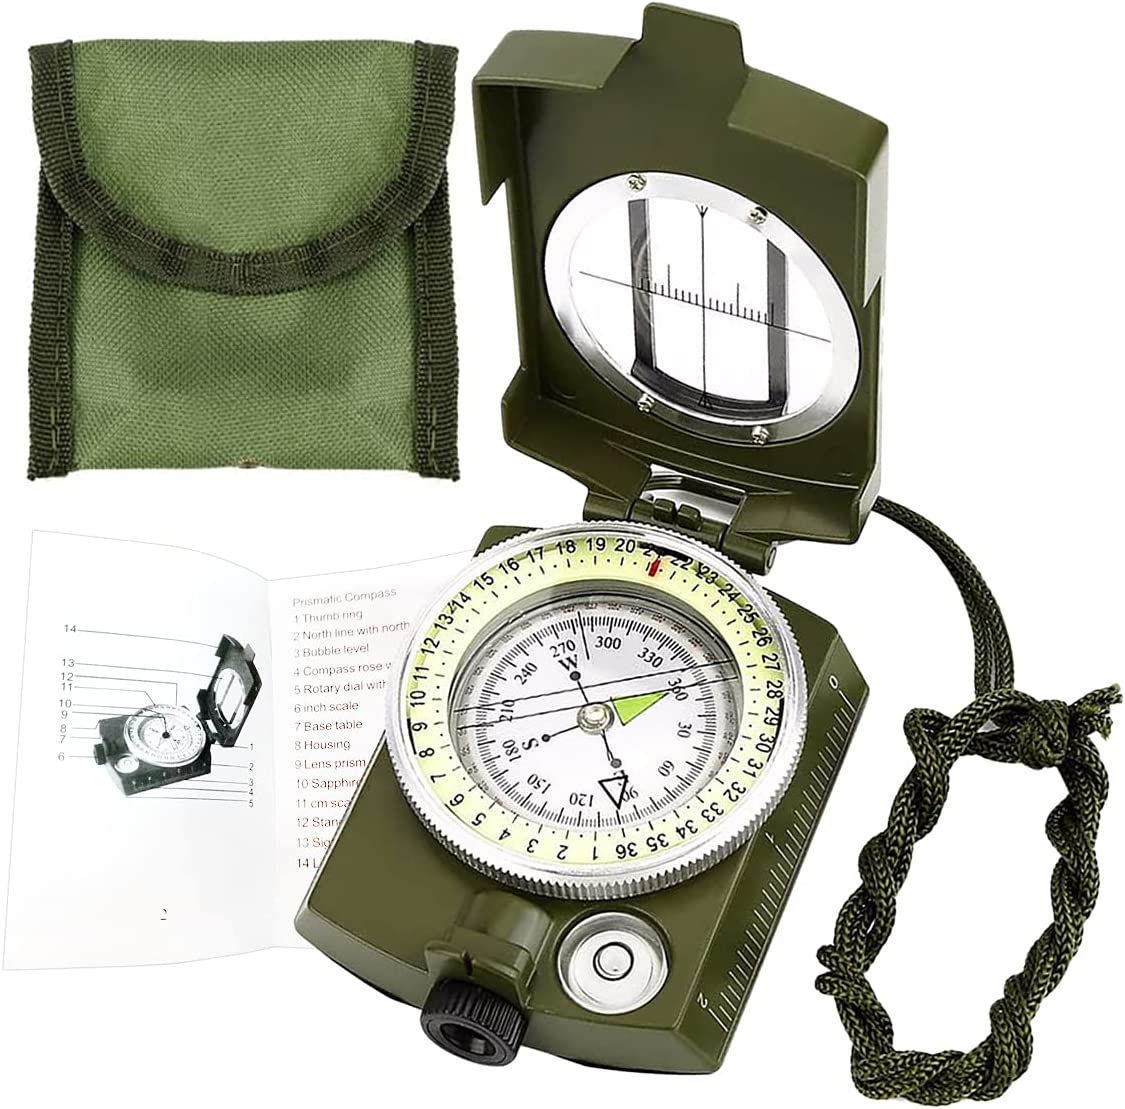 Da Butler Military Lens Bargain Aiming Bag with Shock Waterproof Surprise price Compass